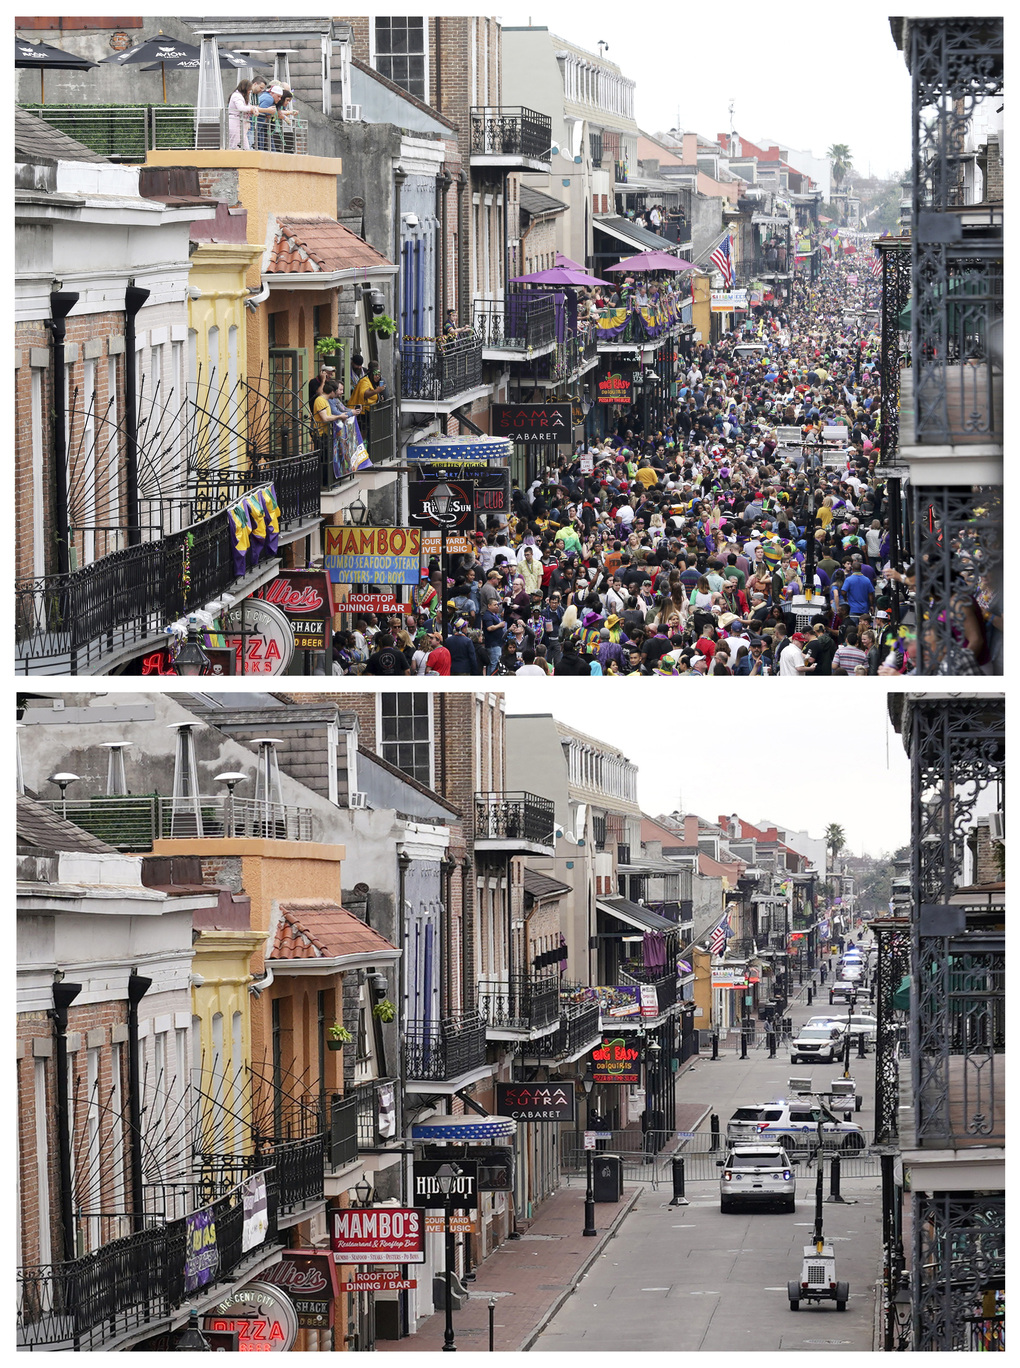 This combination of Tuesday, Feb. 25, 2020, top, and Tuesday, Feb. 16, 2021 photos shows Bourbon Street in the French Quarter of New Orleans on Mardi Gras day. Between cold weather and COVID-19, morning streets were nearly empty rather than jam-packed with picnickers and parade watchers. All parades are canceled and bars throughout the city have been closed since Friday. (AP Photo/Rusty Costanza, Gerald Herbert)